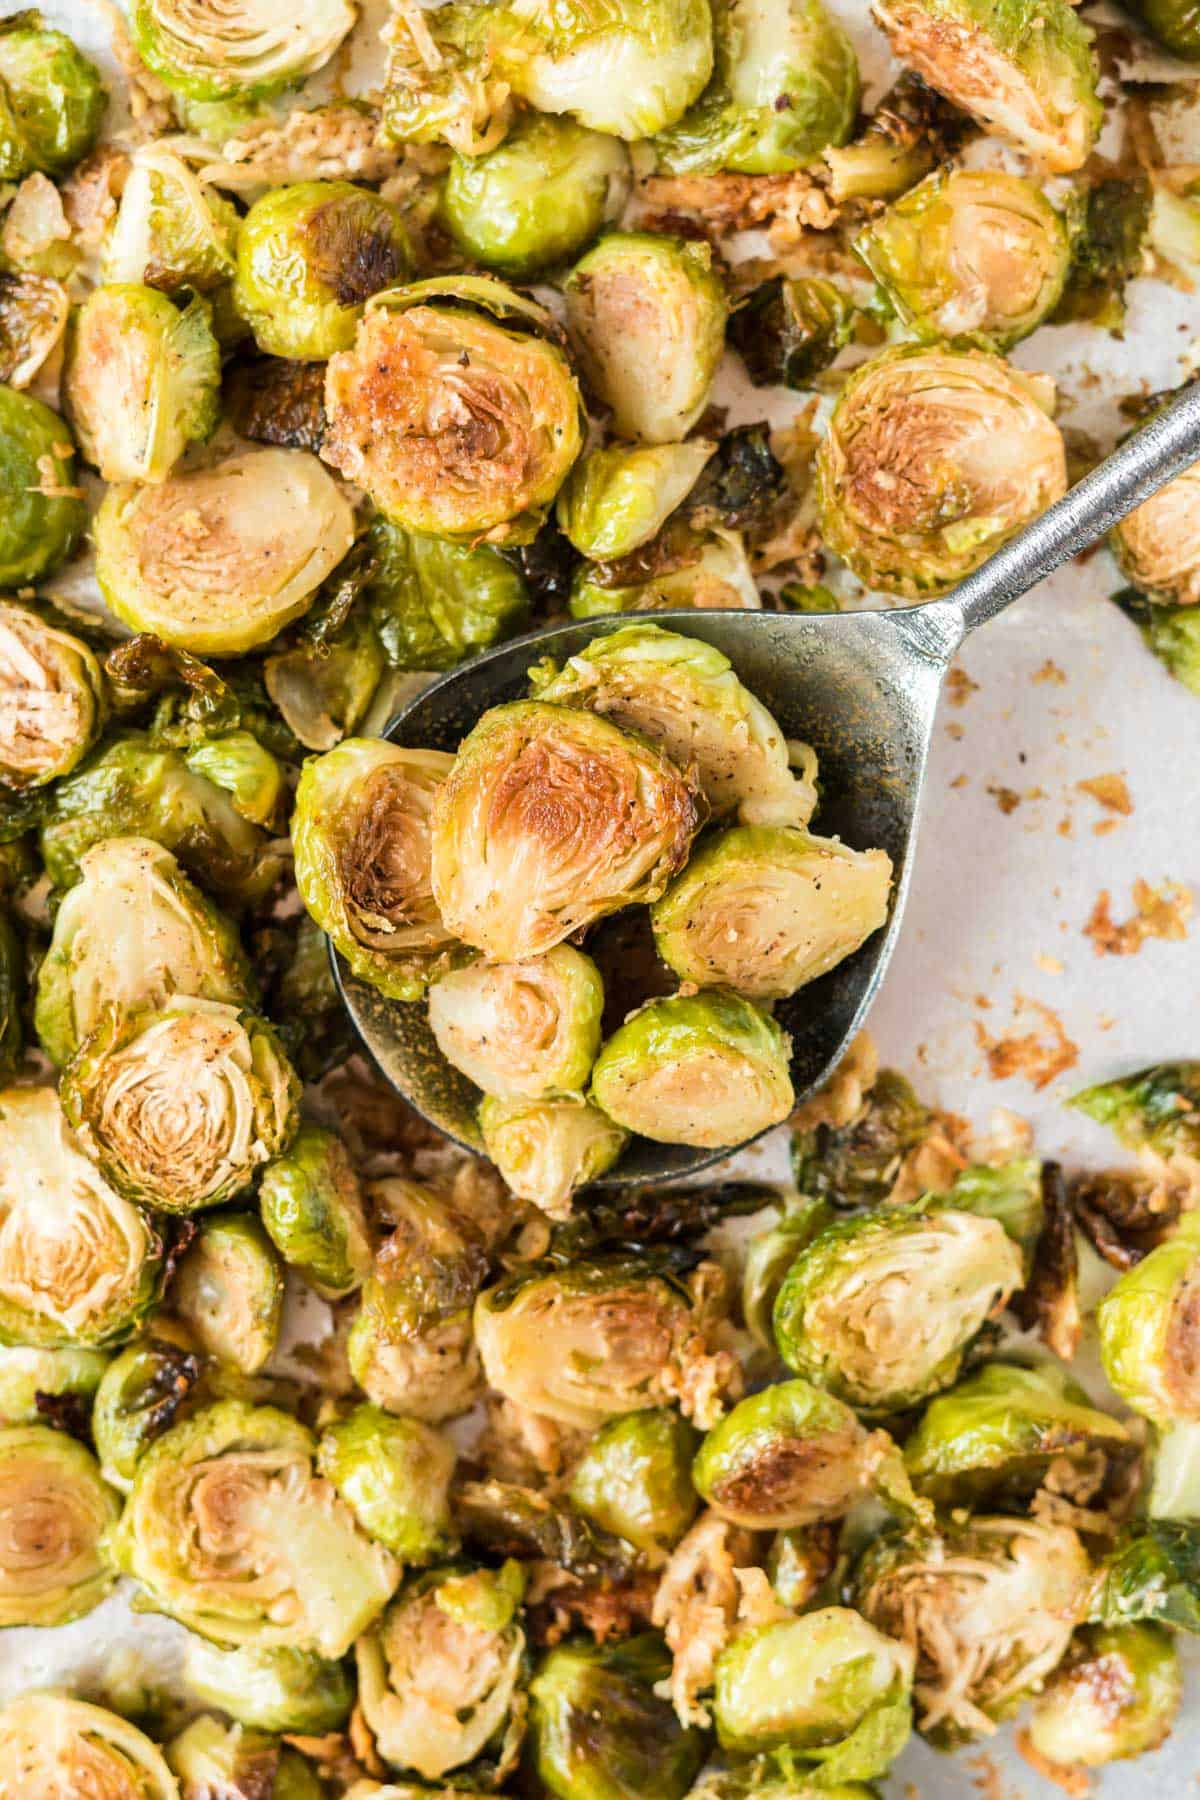 serving spoon taking a scoop of roasted brussel sprouts with parmesan from the baking sheet